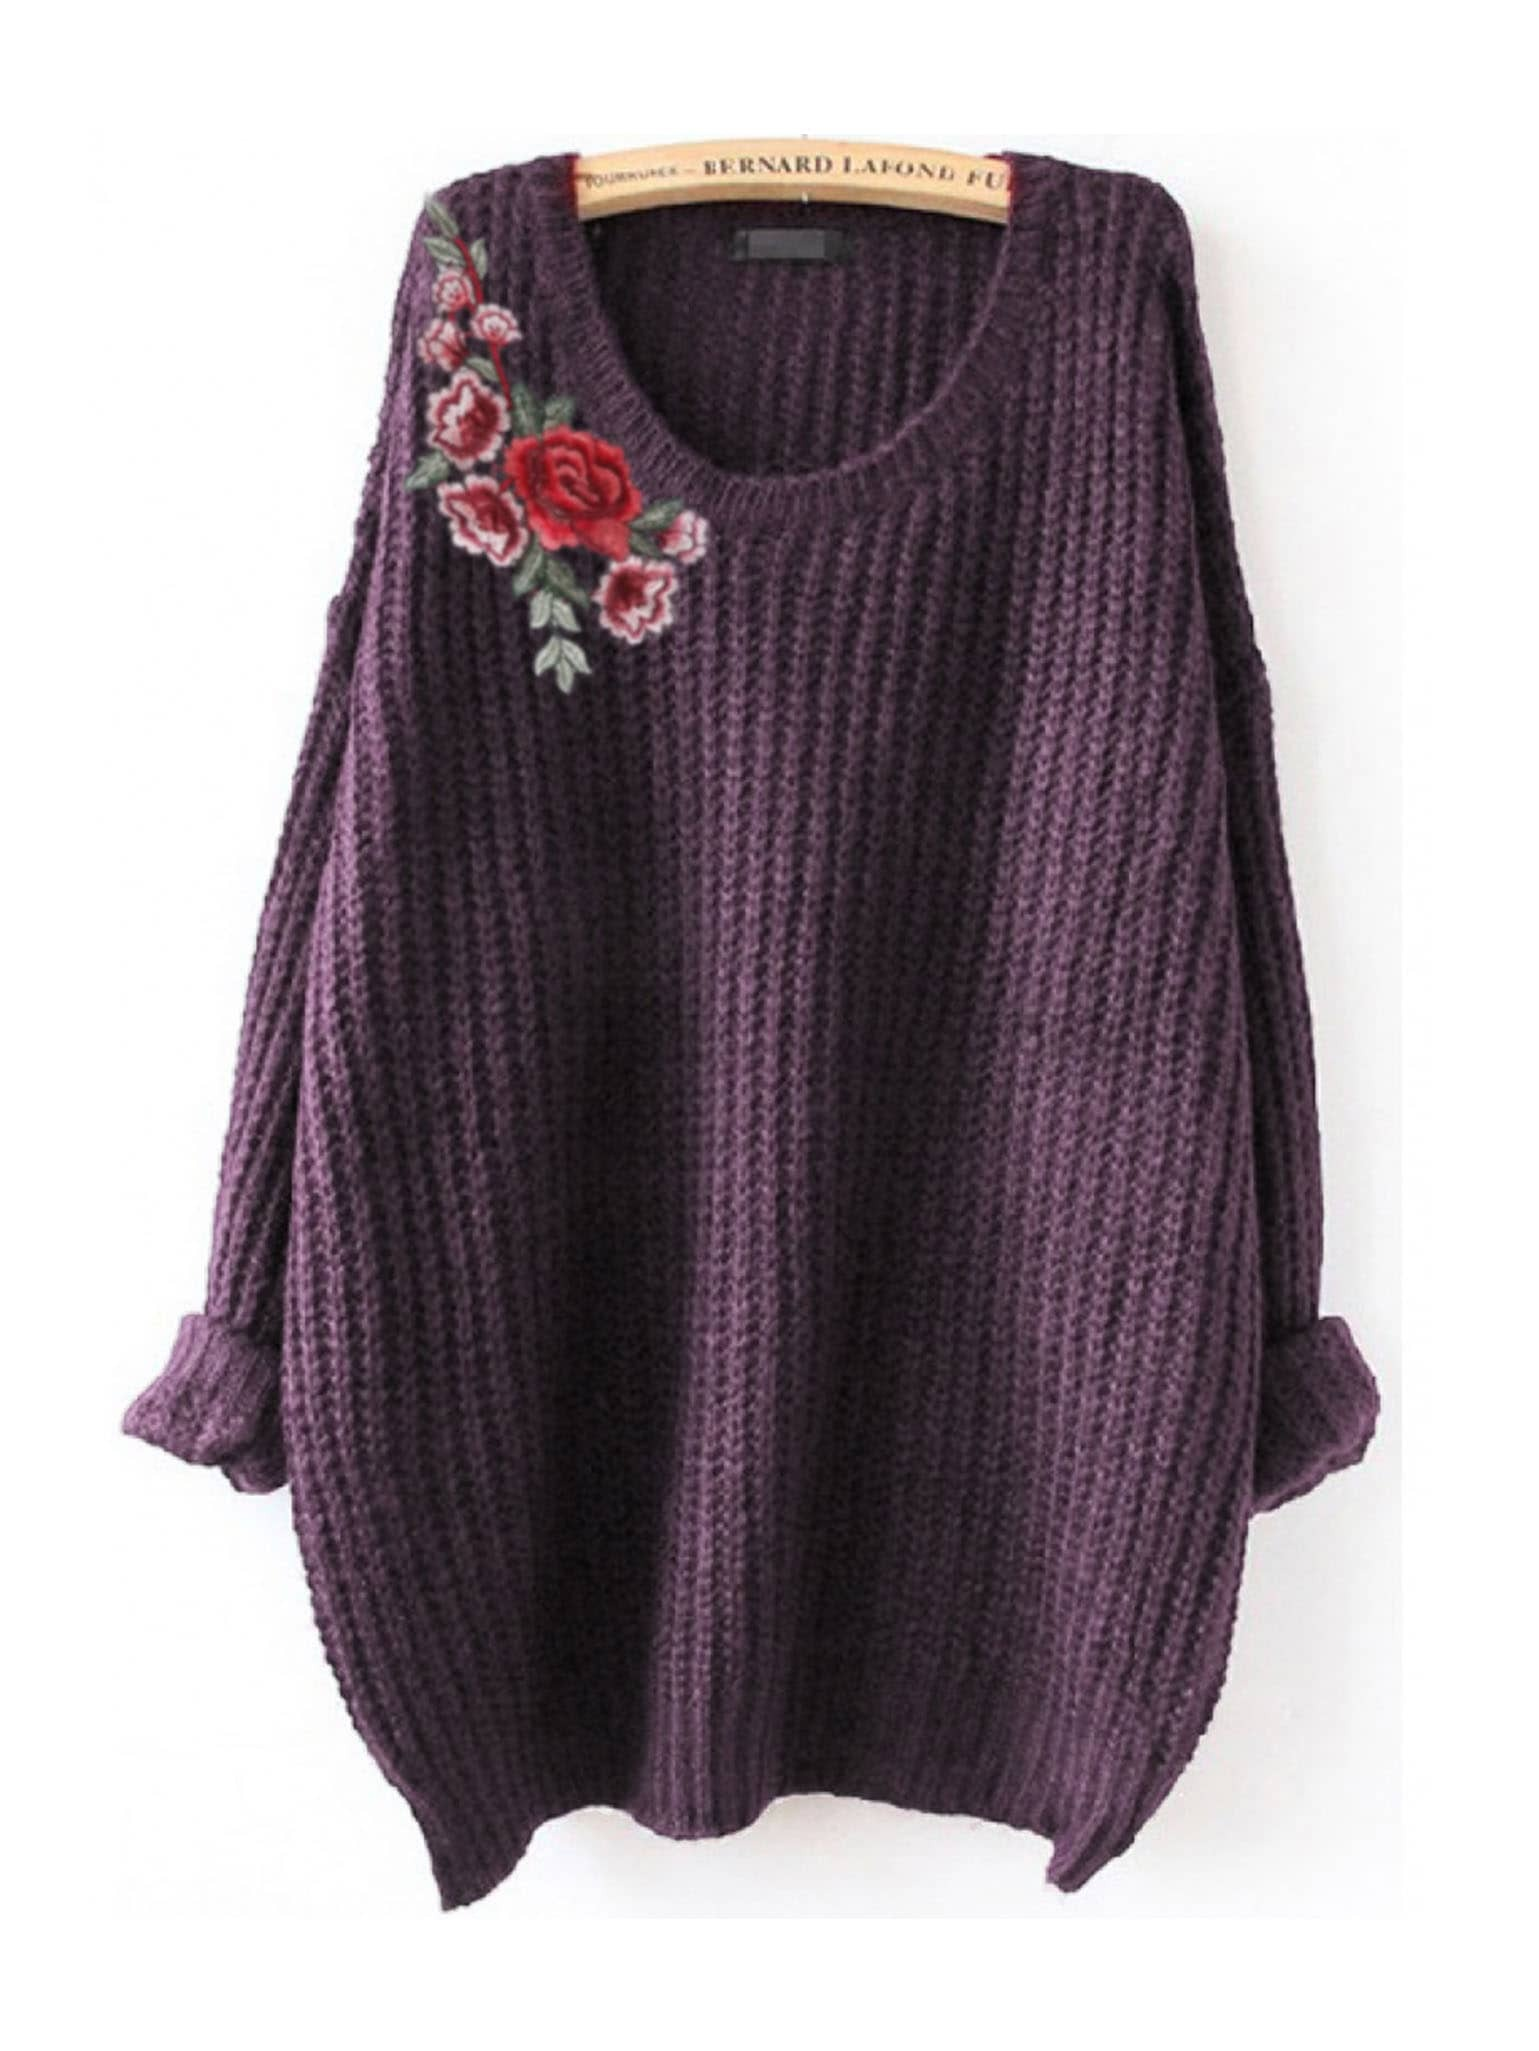 Embroidered Flower Patch Jumper embroidered flower patch jumper